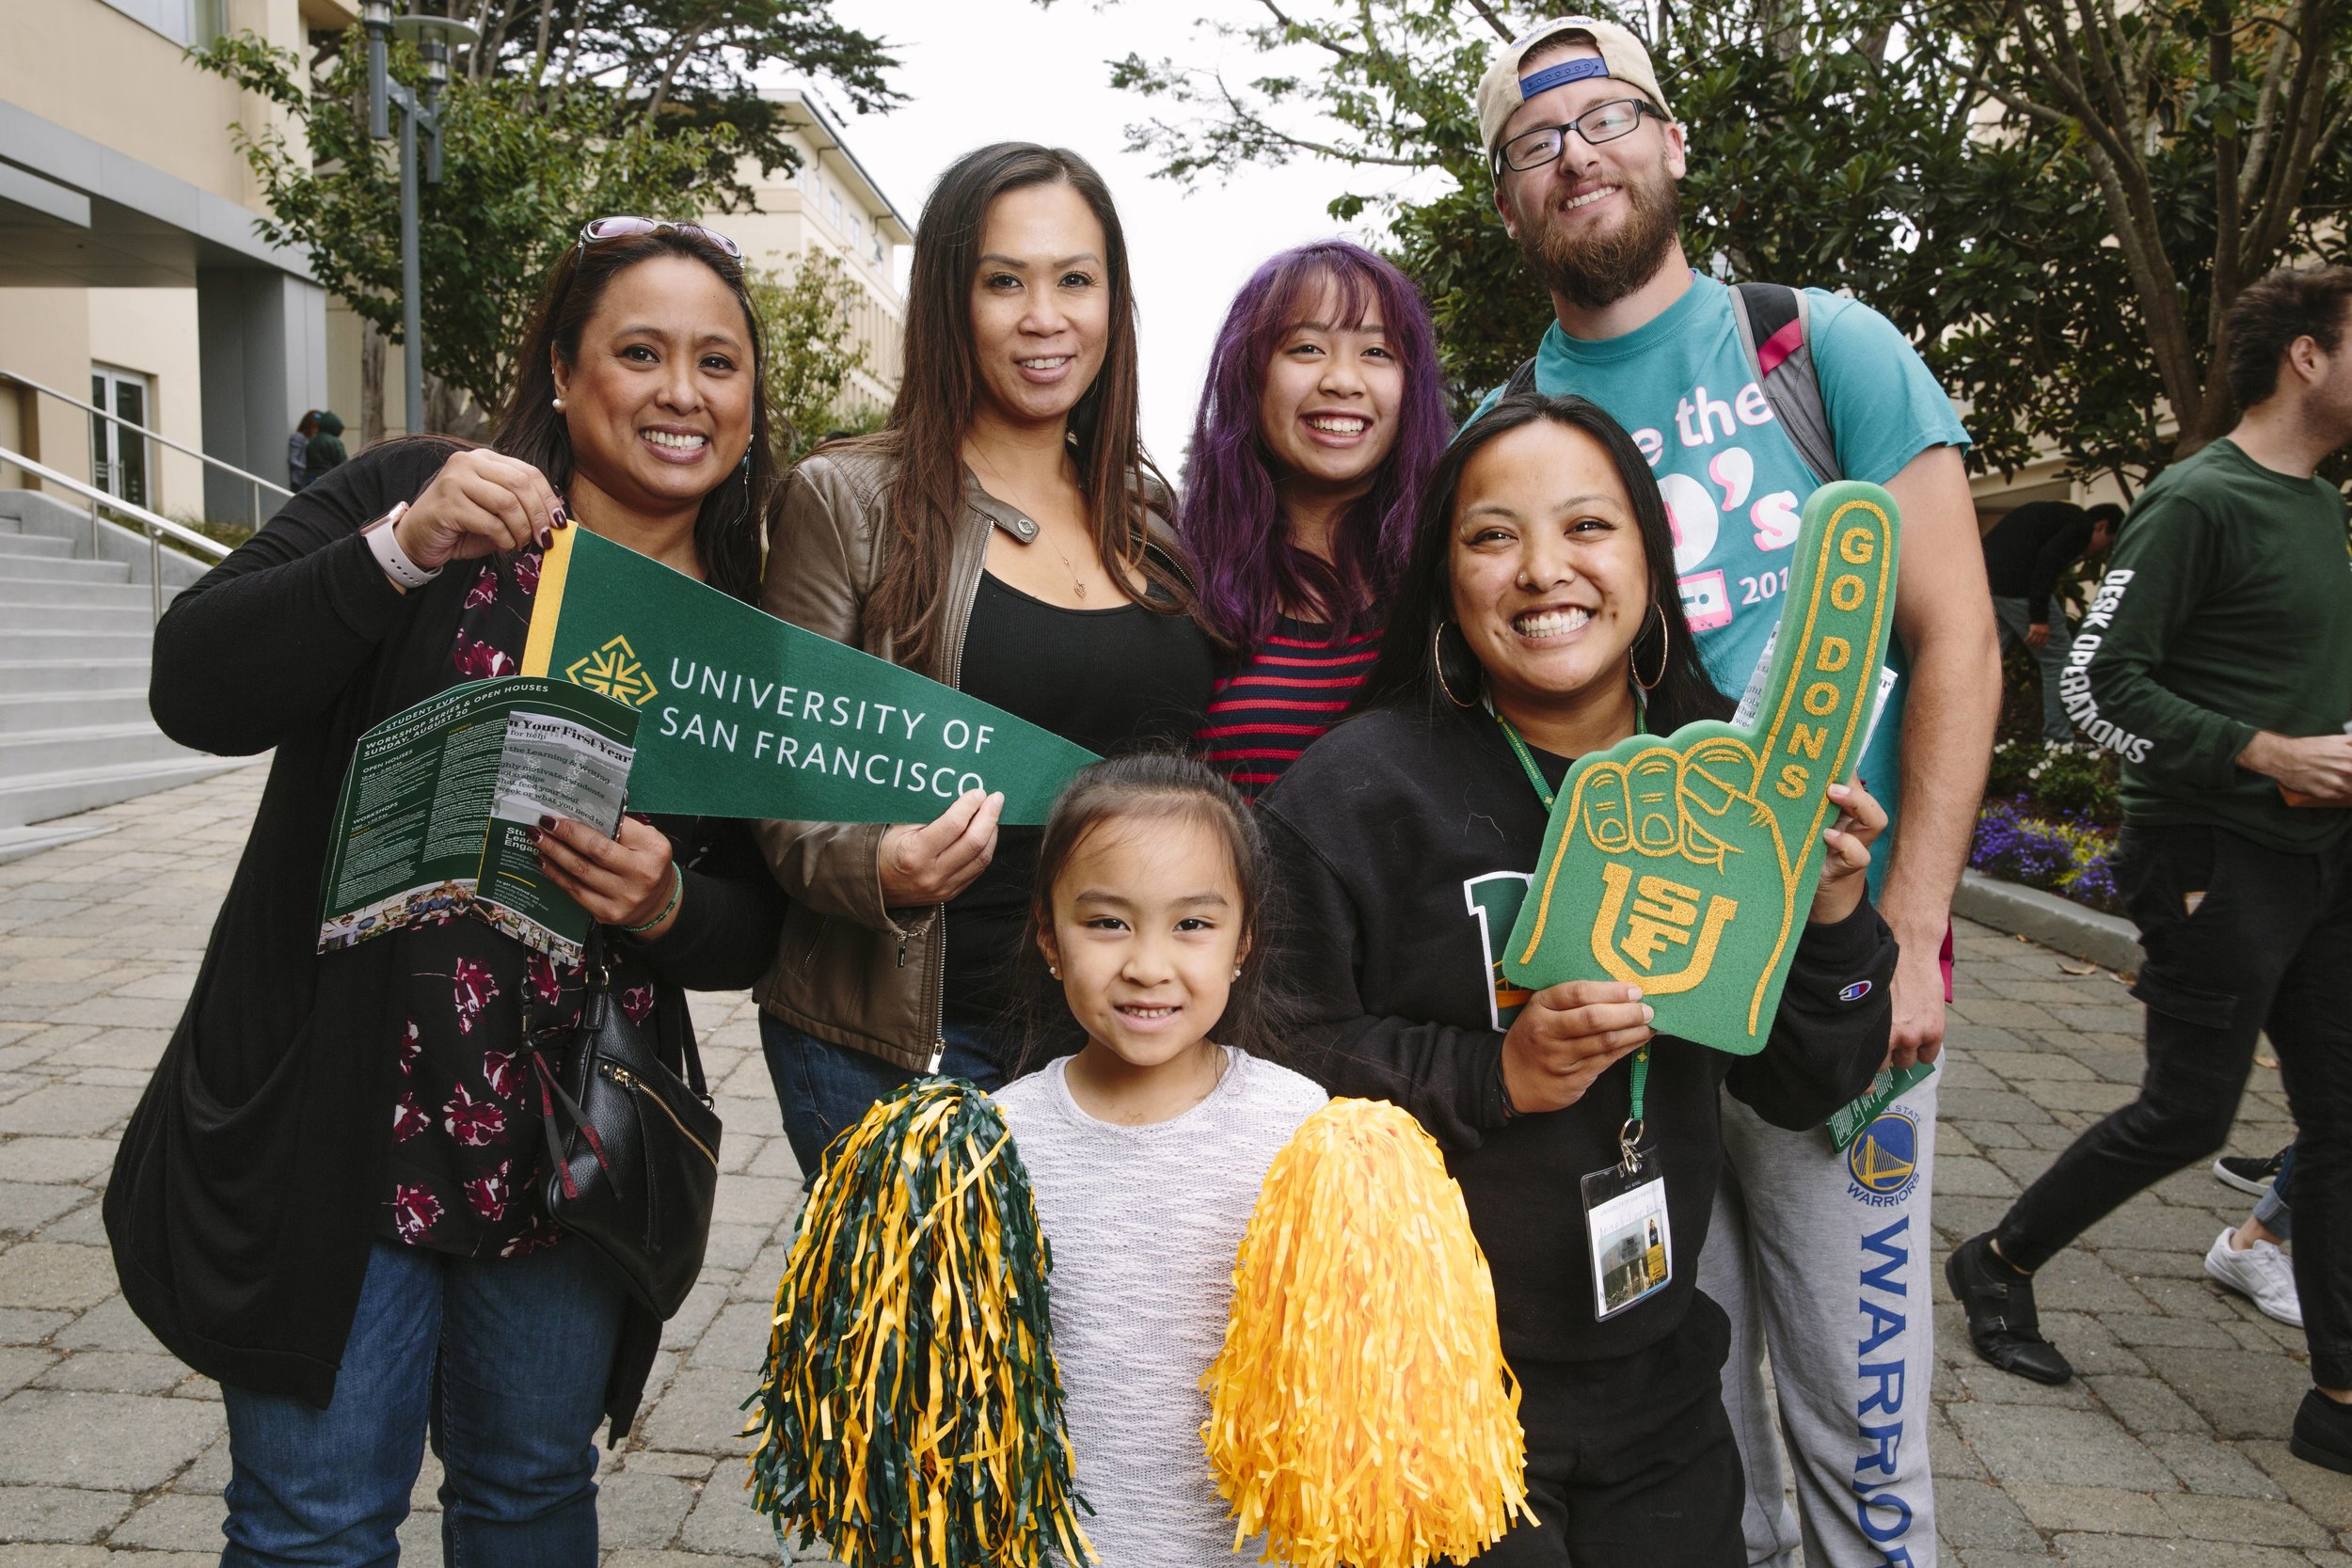 Students and family on move-in day at the University of San Francisco (San Francisco, CA)